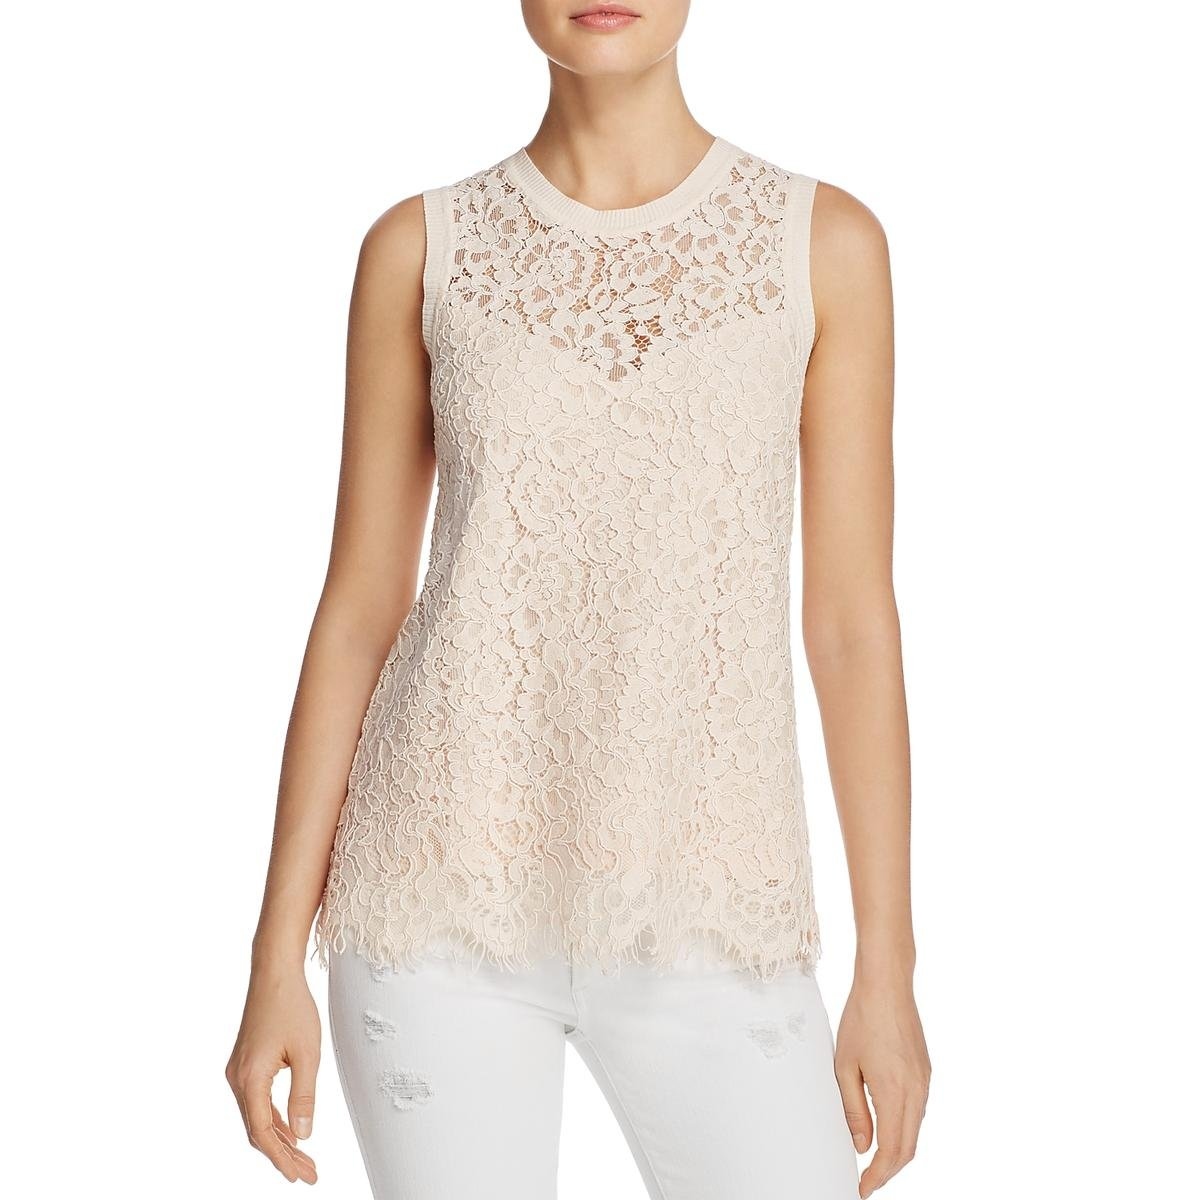 Generation Love Womens Lace Illusion Casual Top SP17113